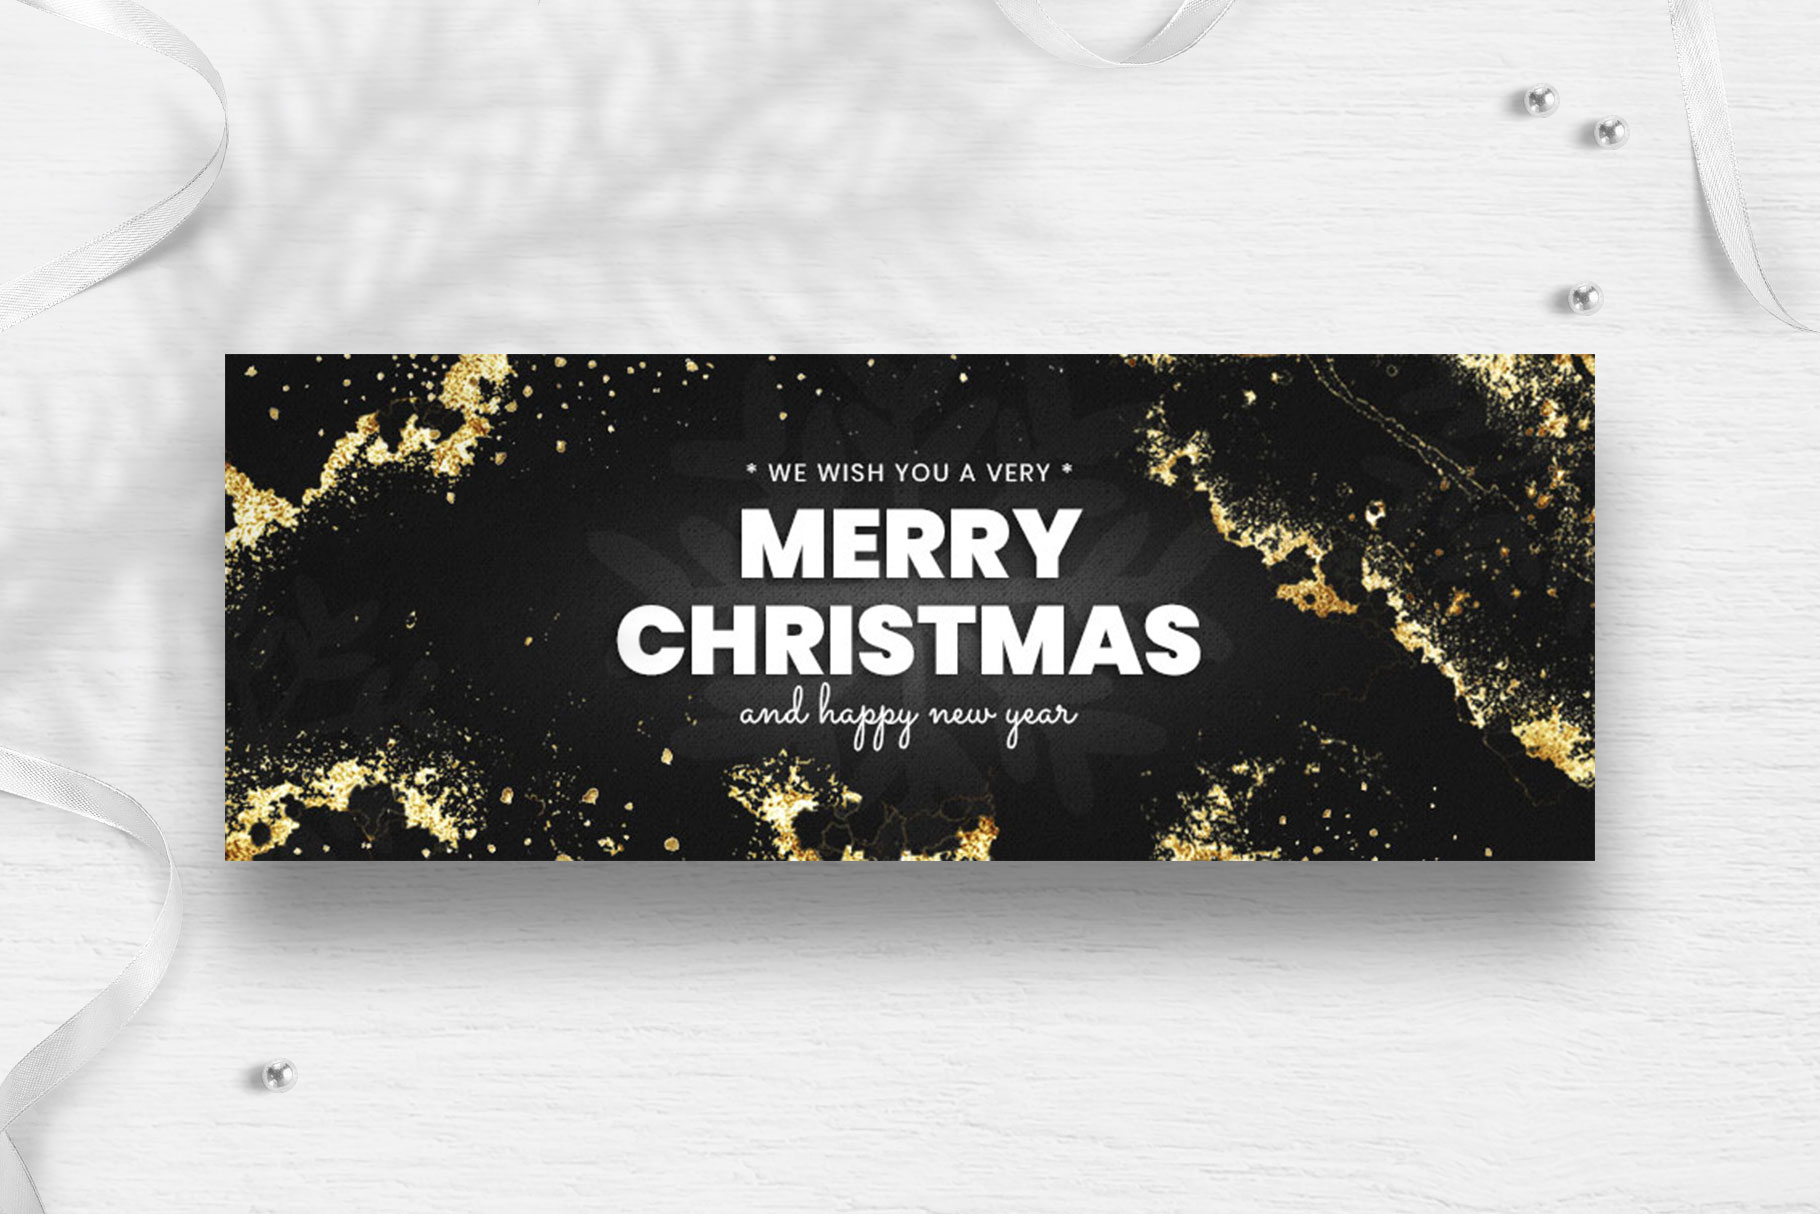 Merry Christmas Facebook Cover Template example image 5